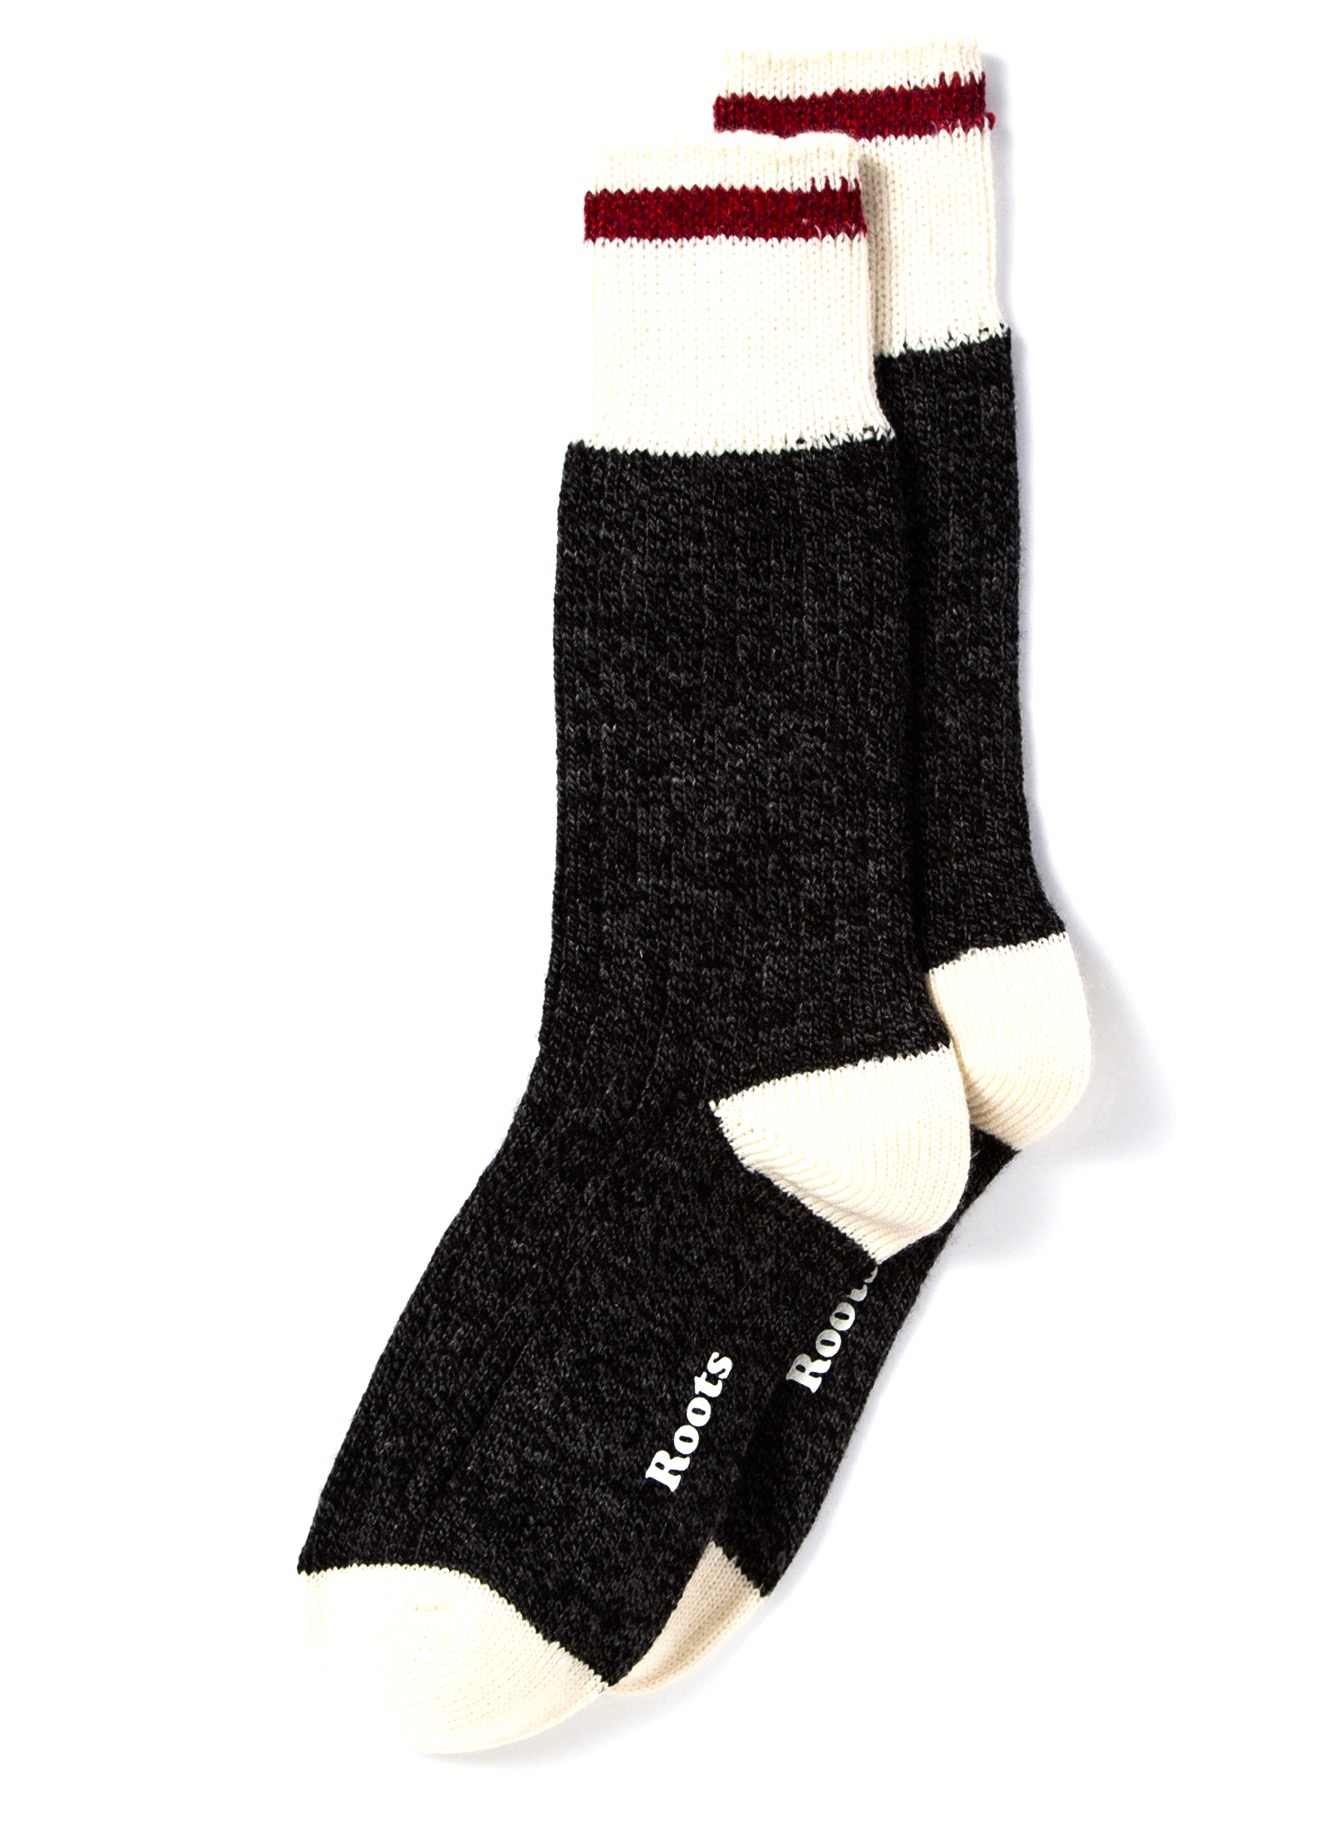 Womens Cabin Socks 2Pk Black/Red